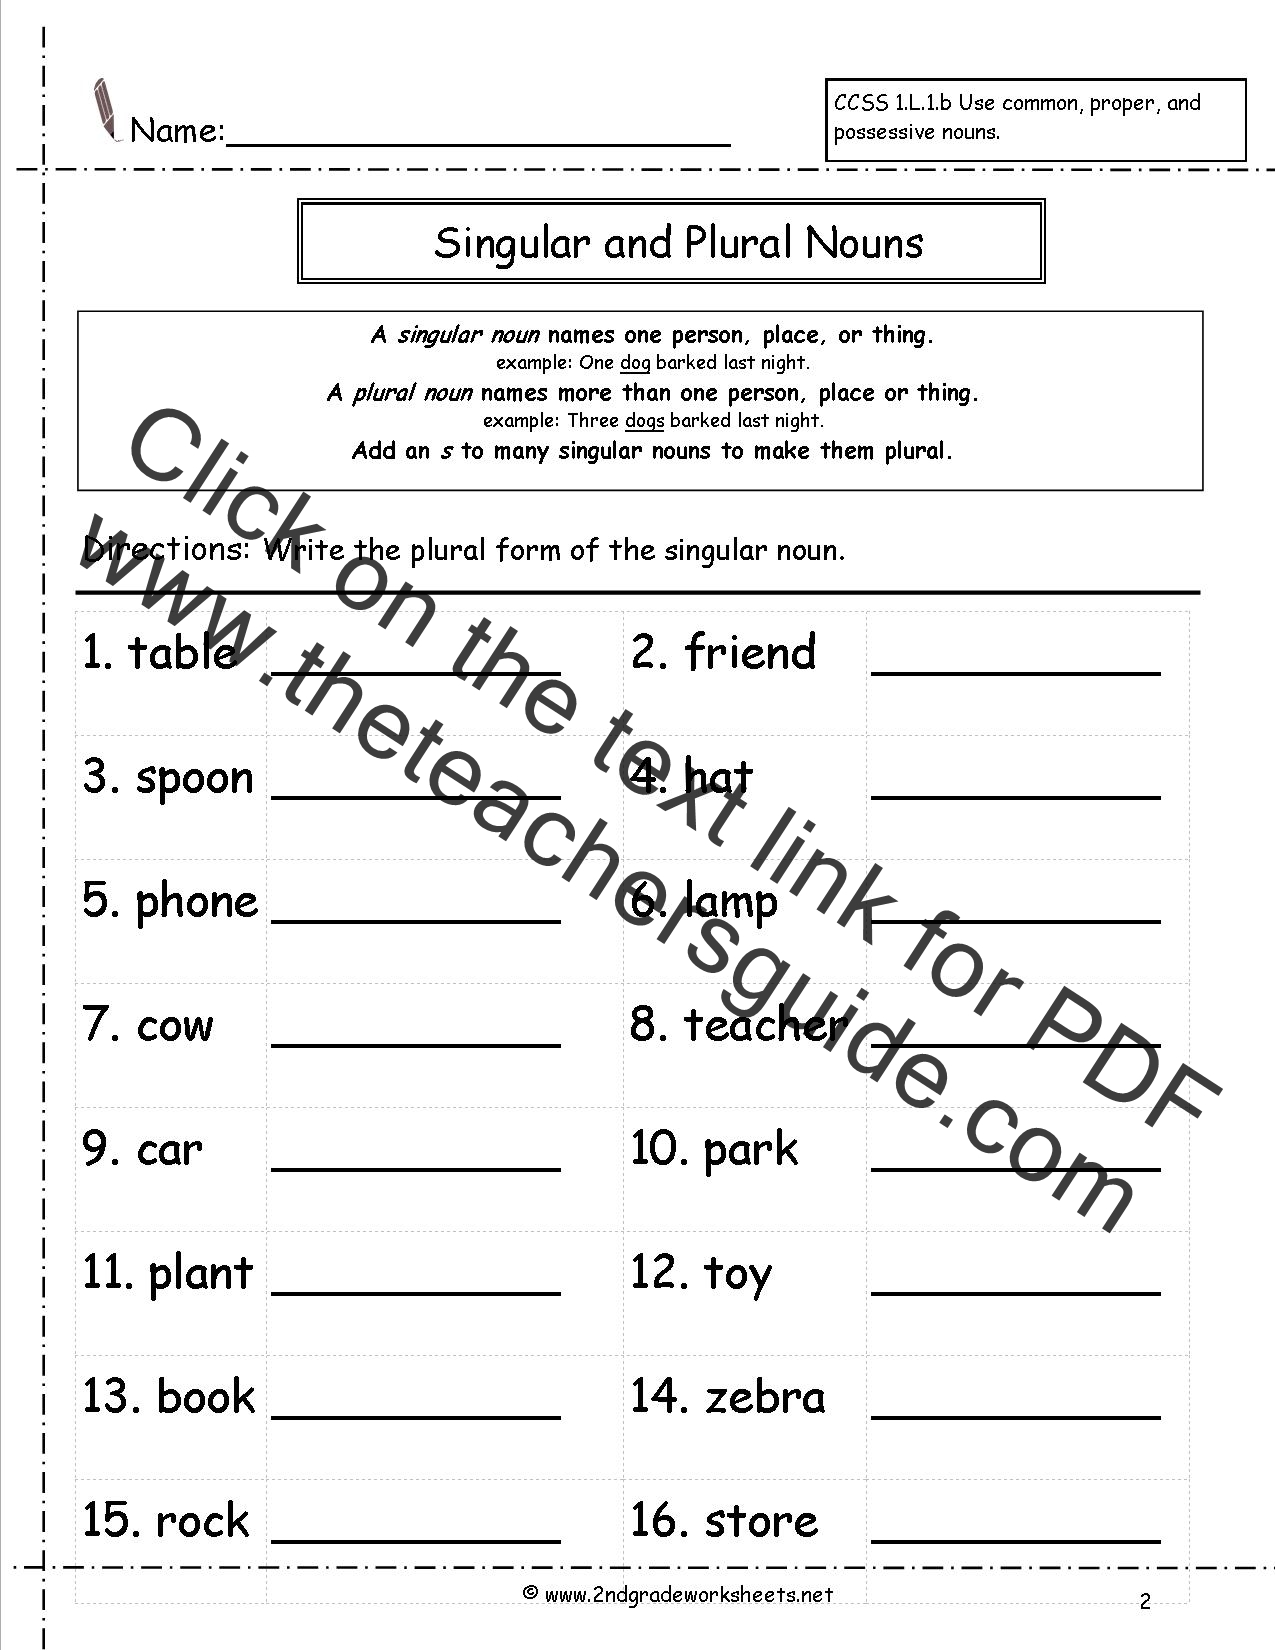 Printables Irregular Plural Nouns Worksheets singular and plural nouns worksheets worksheet